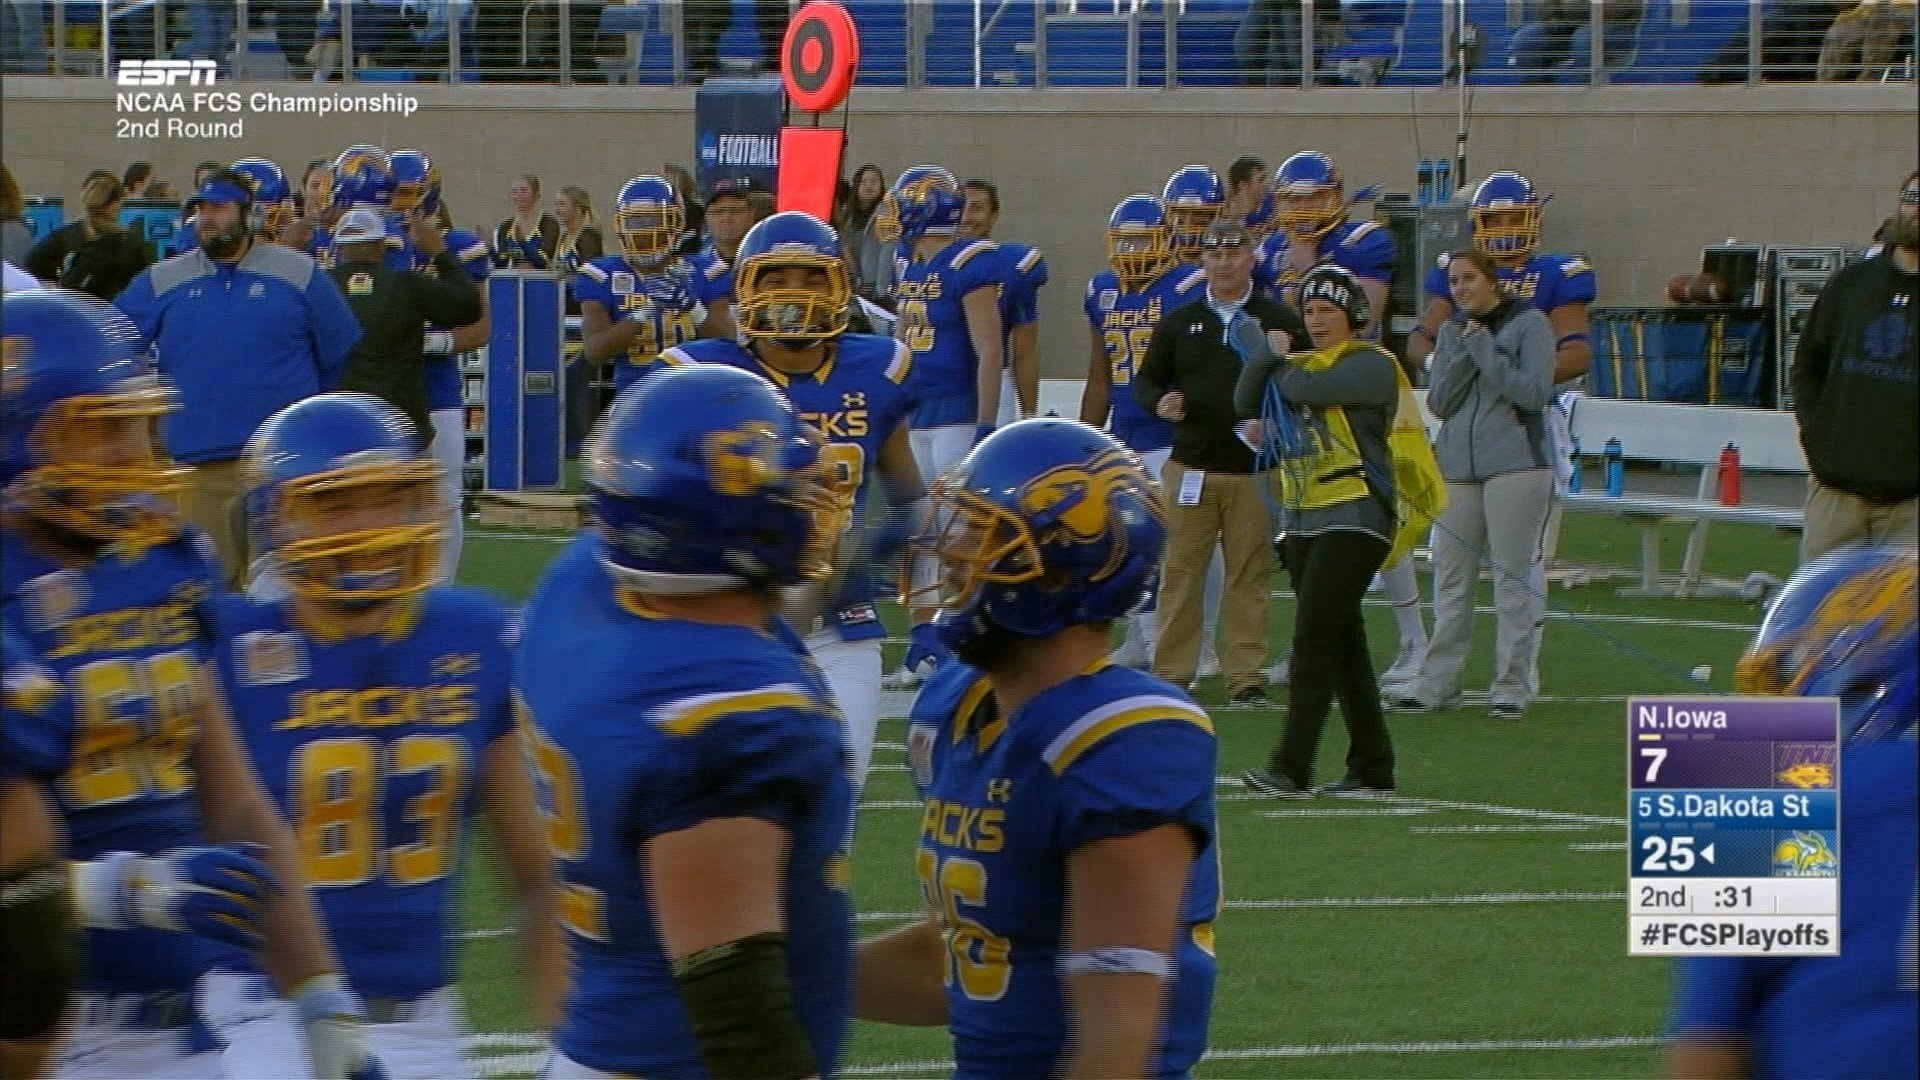 SDSU beat UNI on Saturday, 37-22.